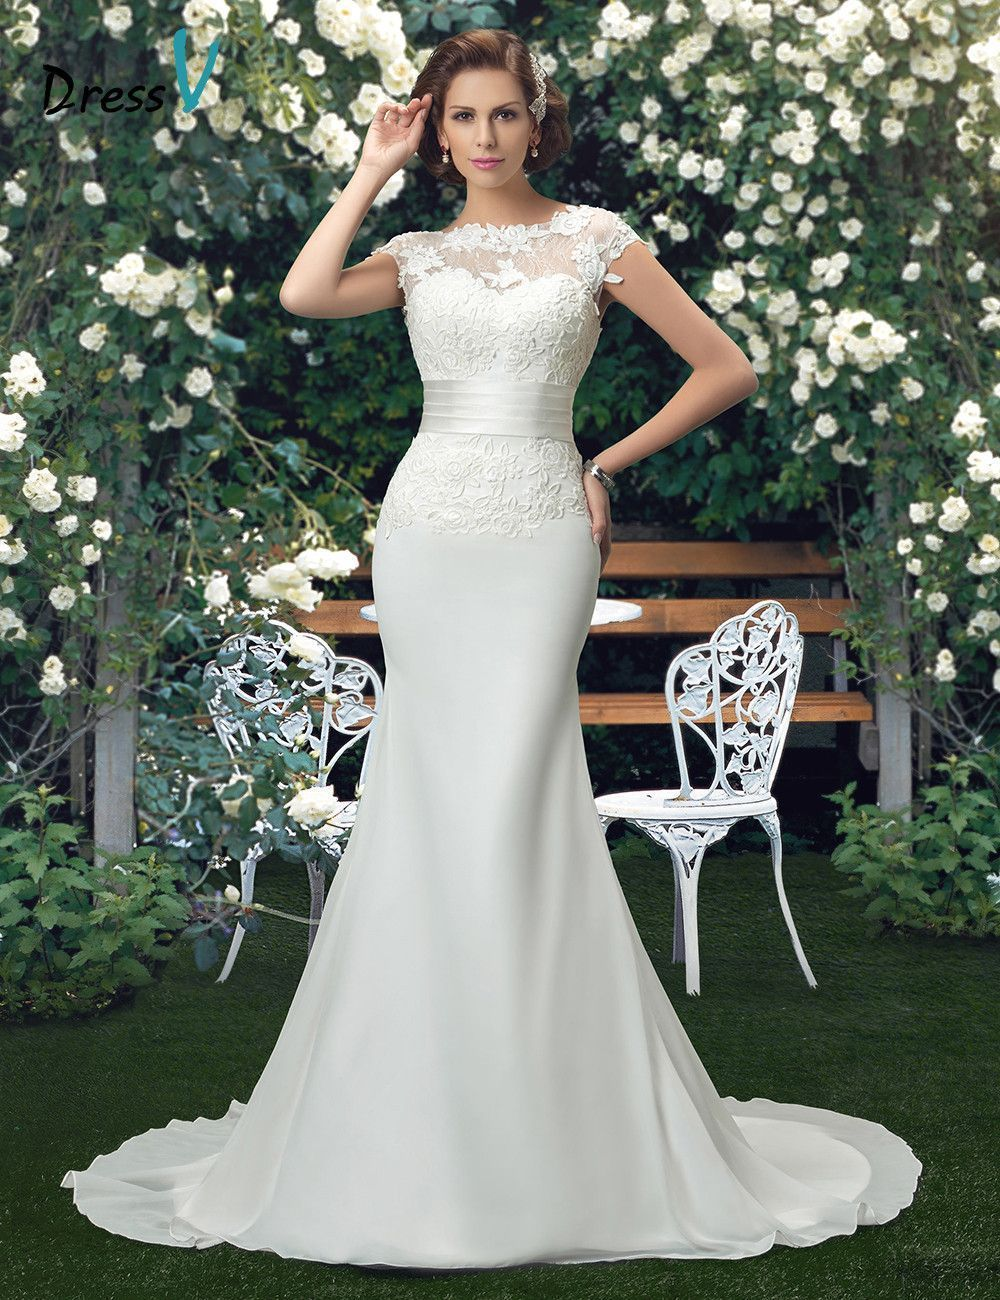 Item Type  Wedding Dresses Waistline  Natural is customized  Yes Brand  Name  Dressv Dresses 1f81be76f4b0